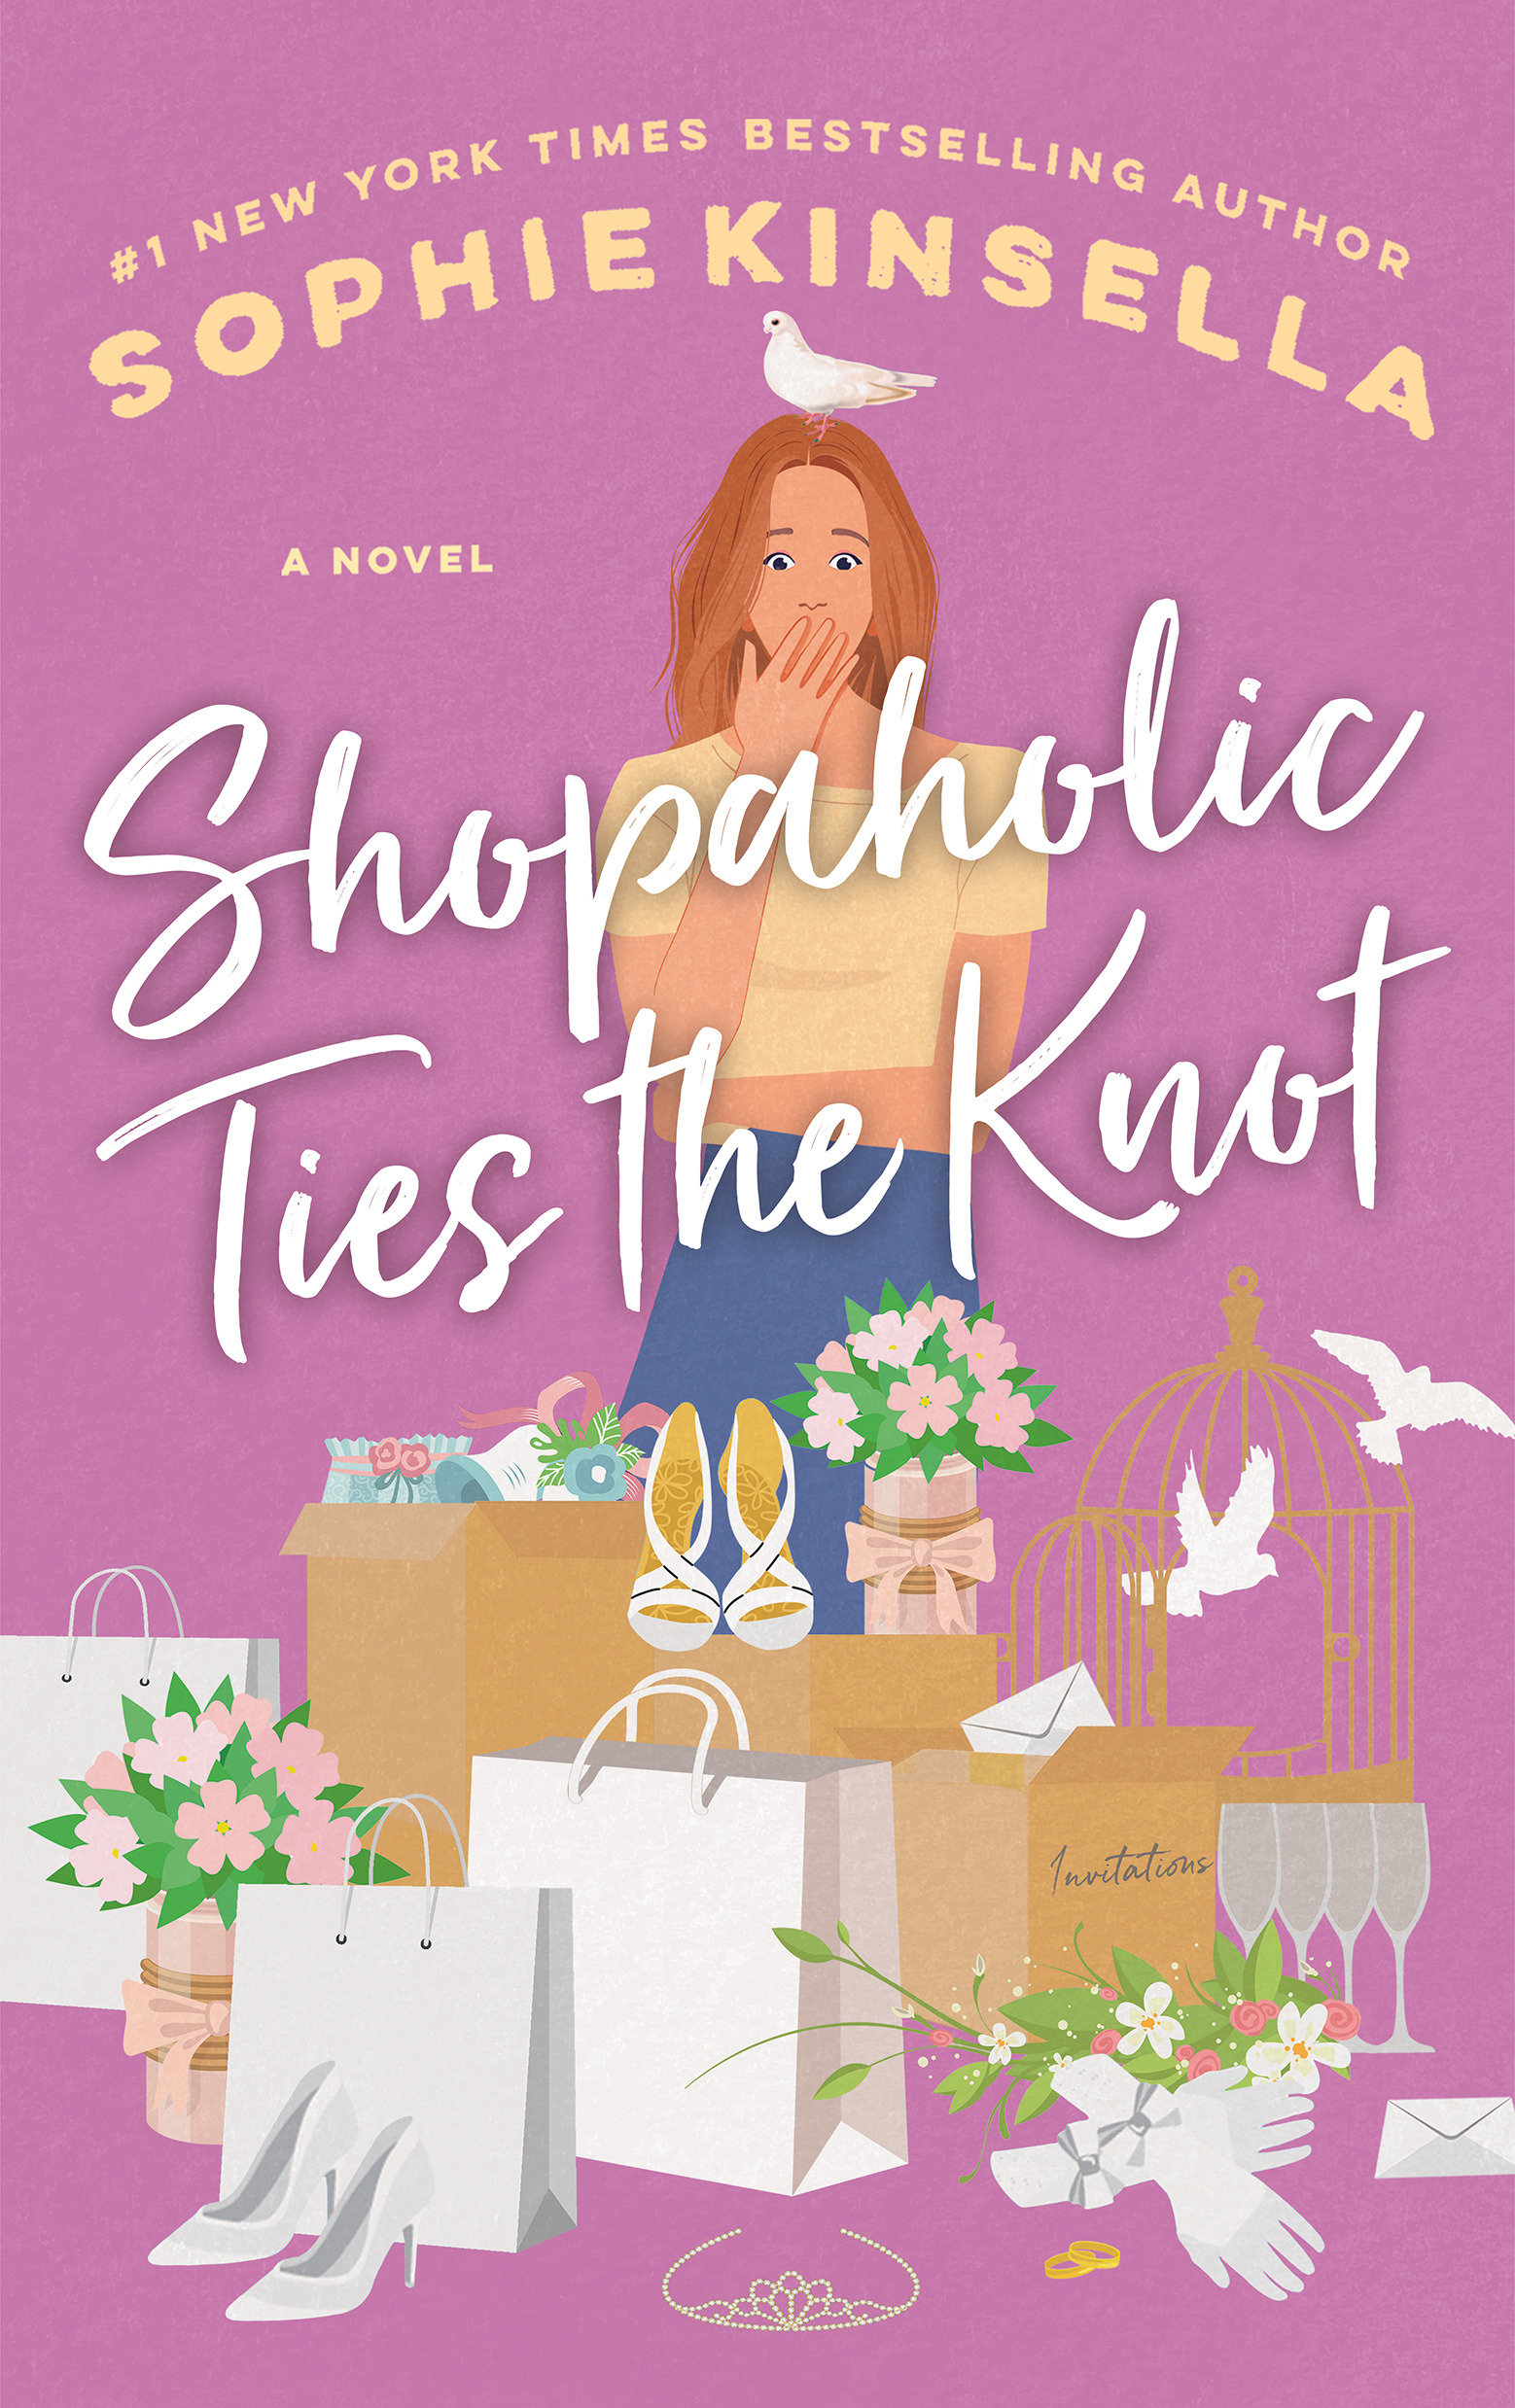 Shopaholic ties the knot cover image